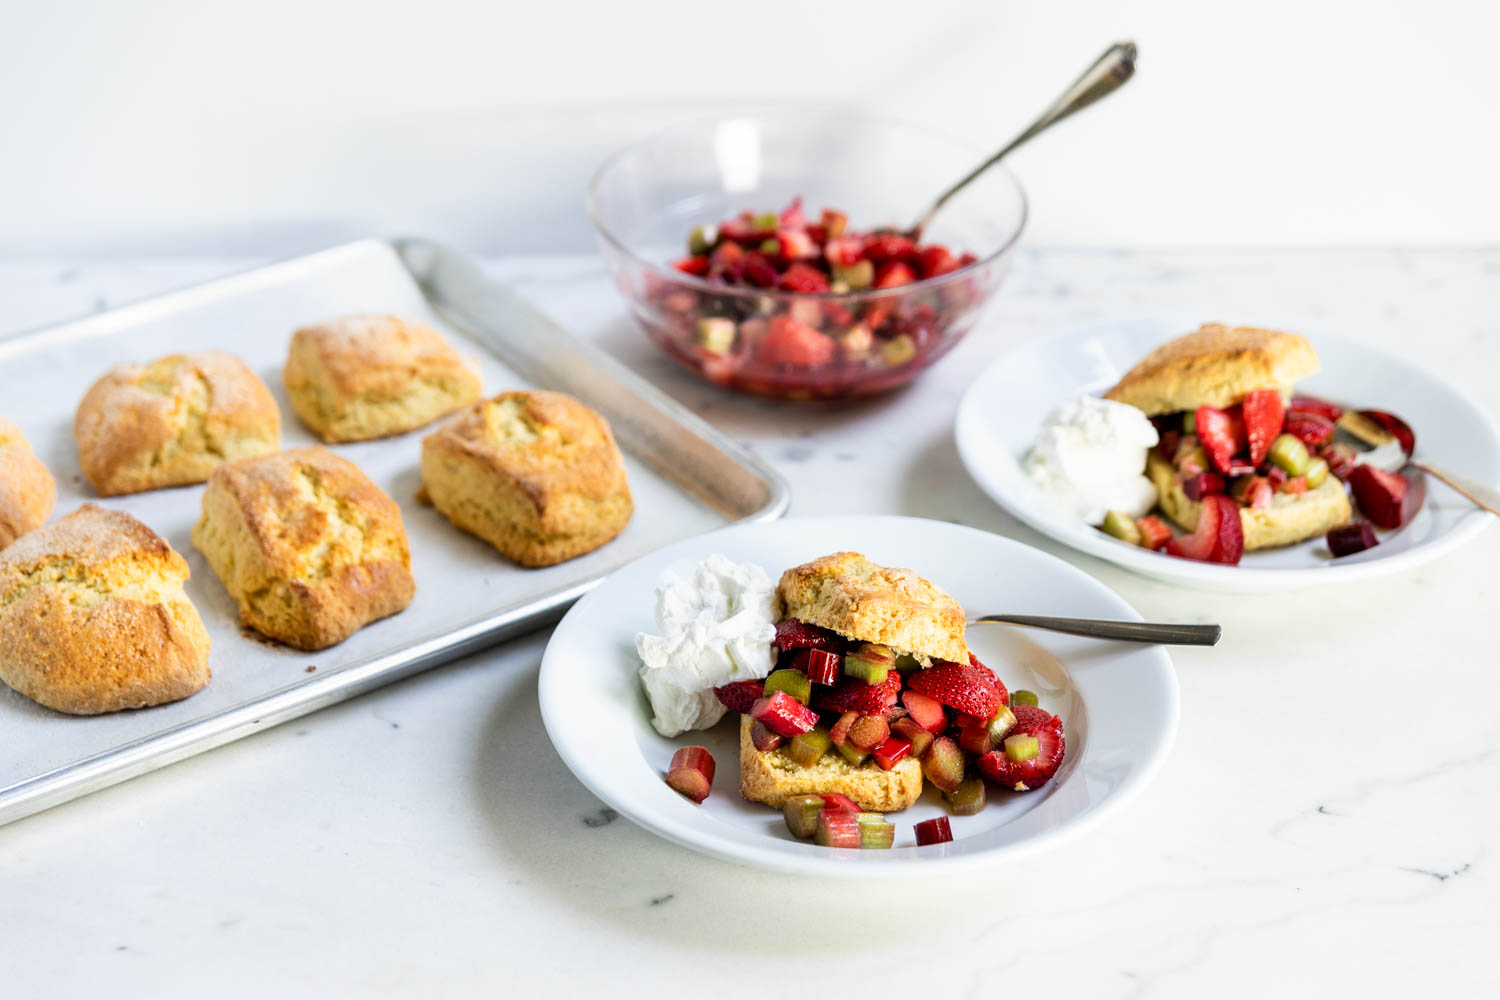 Strawberry and rhubarb shortcakes with whipped cream on two bowls with golden biscuits and macerated fruit in a bowl in the background on a marble surface